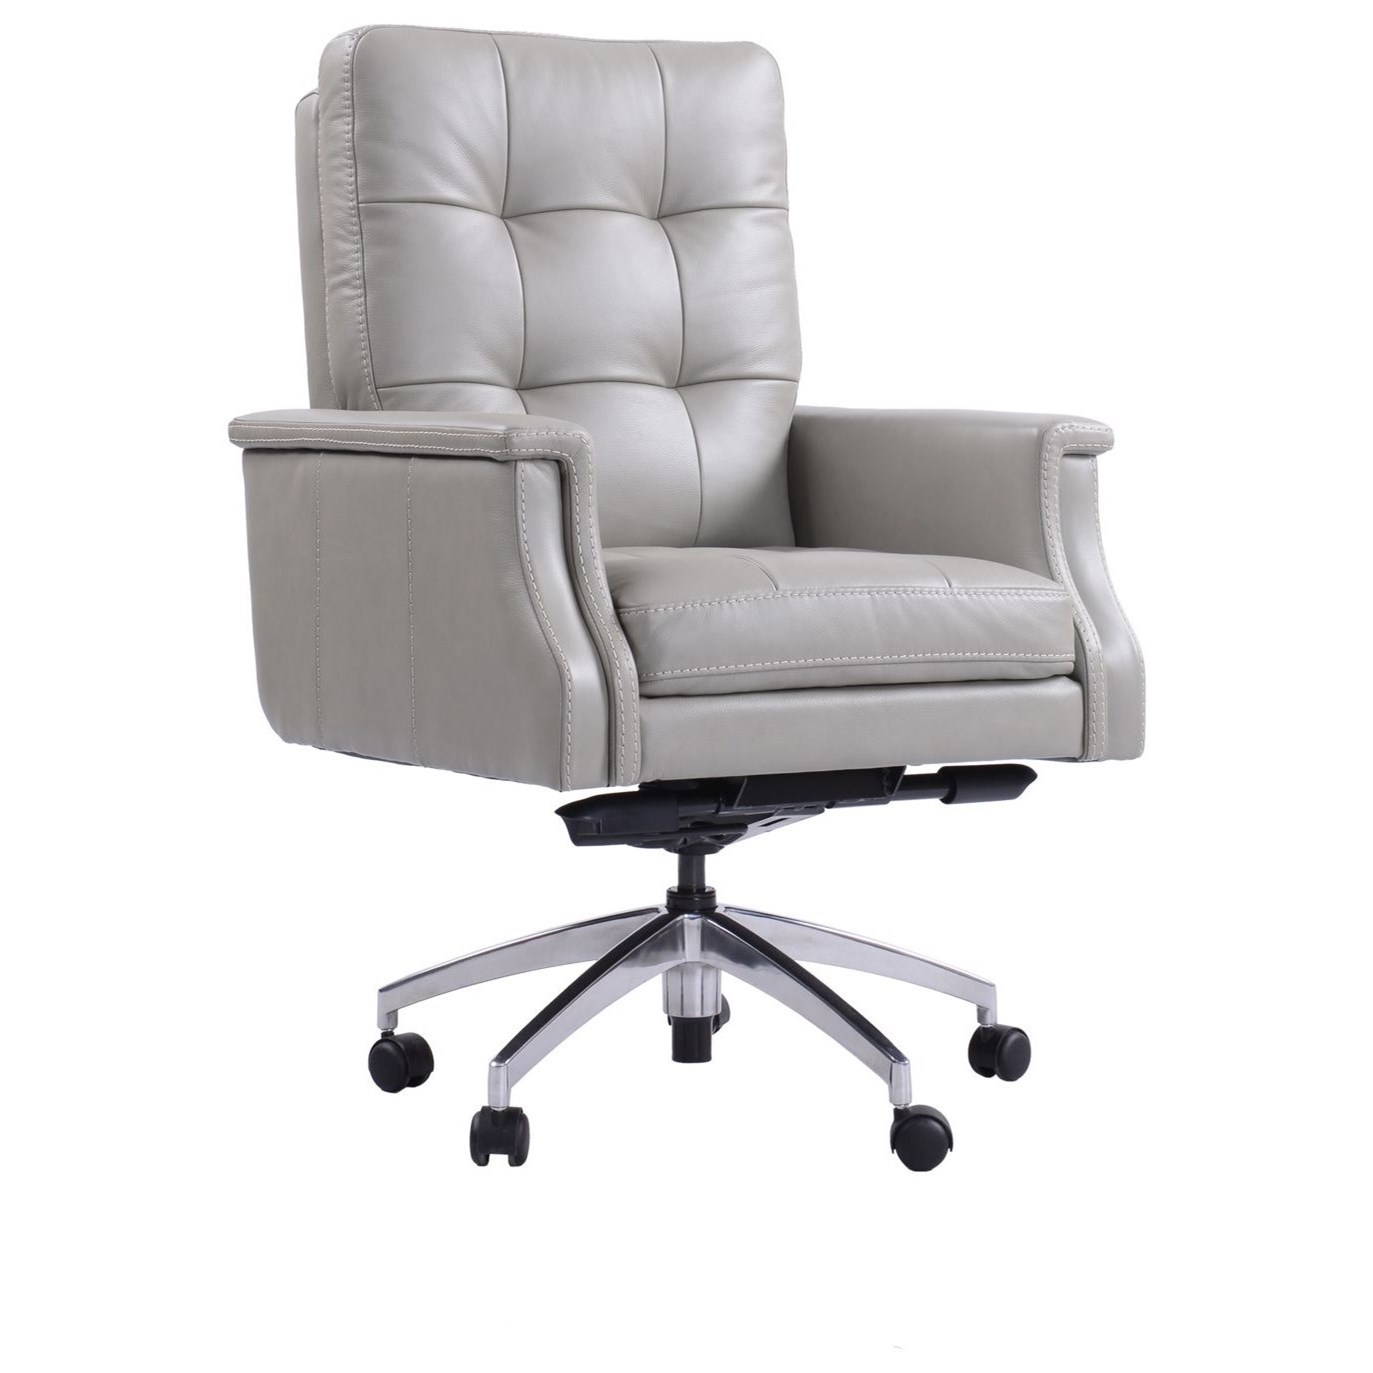 Desk Chairs Leather Desk Chair by Parker Living at Bullard Furniture